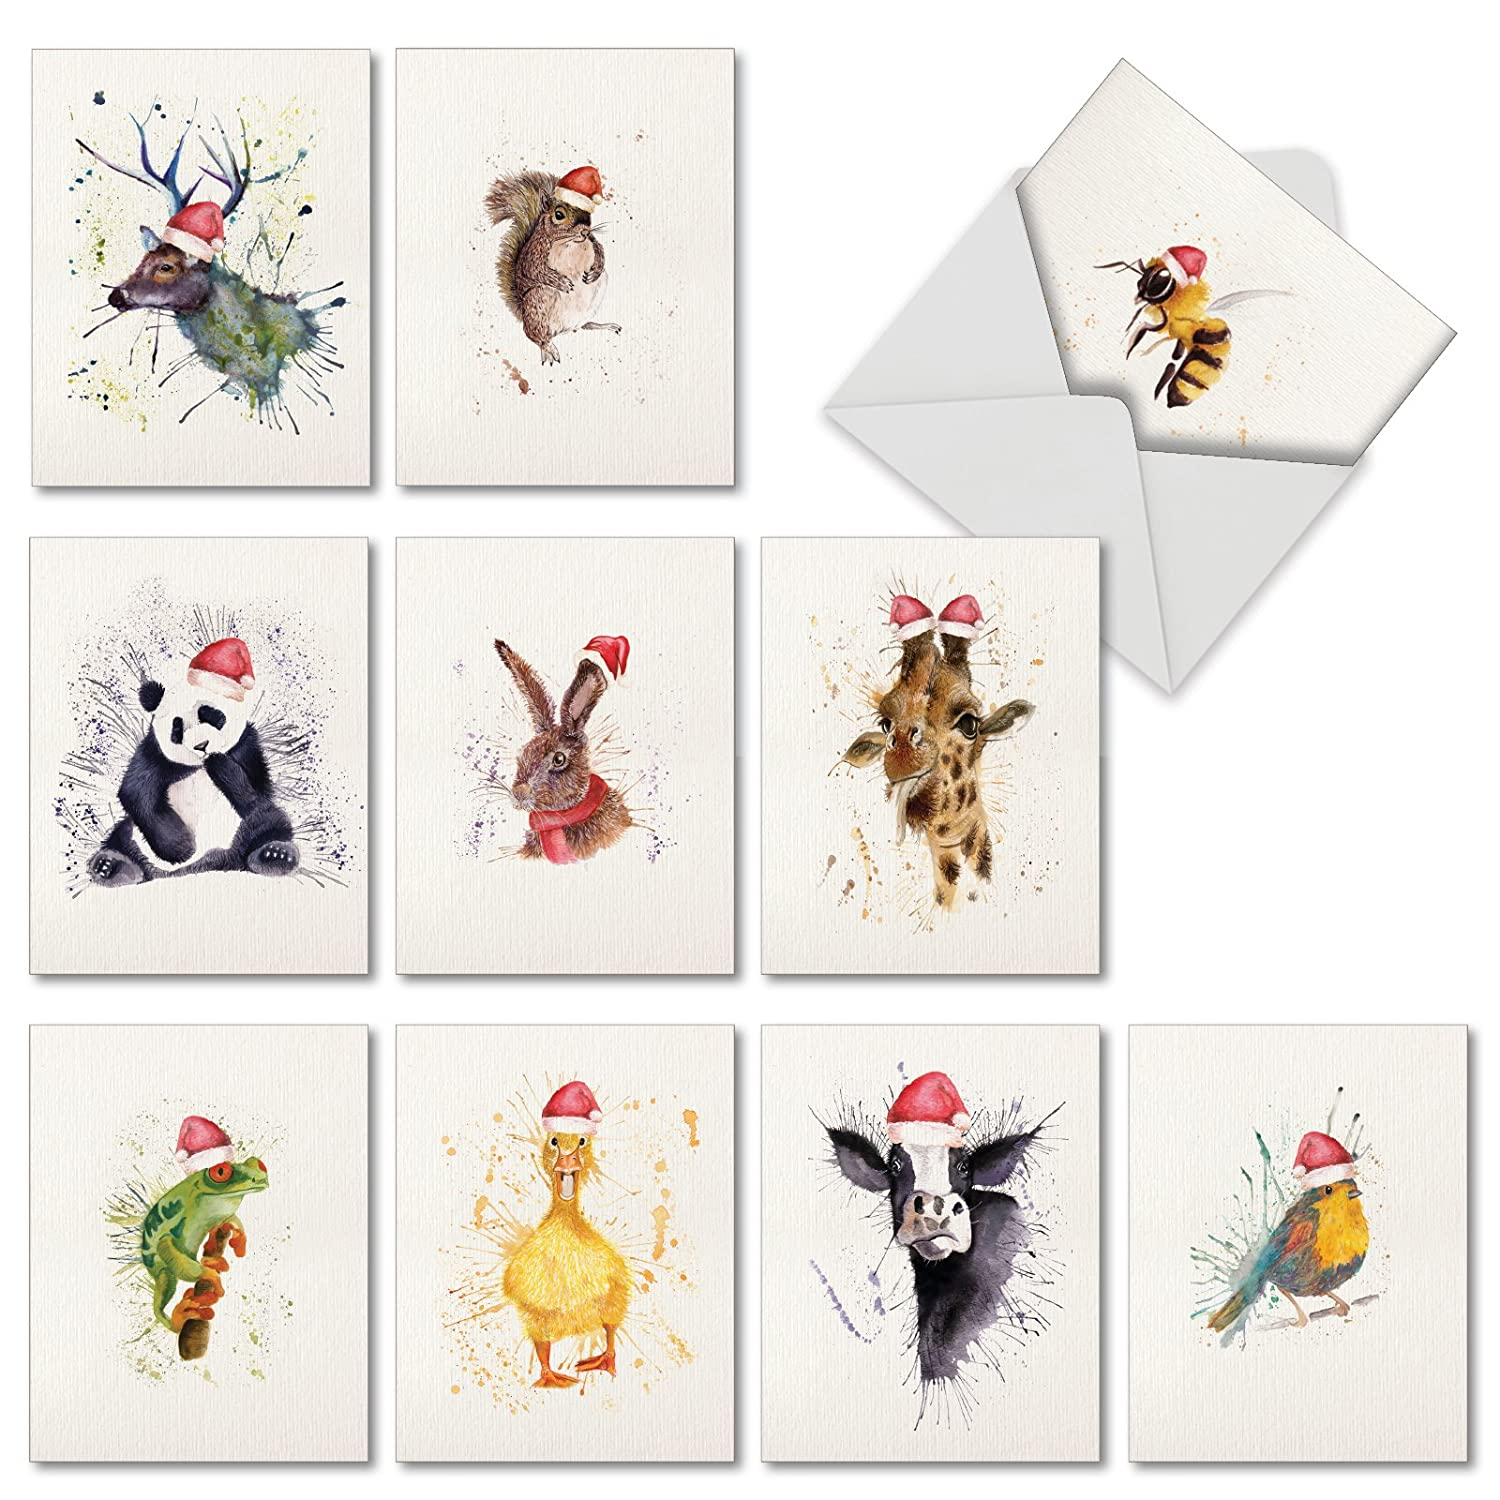 Watercolor Christmas Cards.10 Animal Watercolor Christmas Cards With Envelopes 4 X 5 12 Inch Assortment Of Boxed Greeting Cards Wildlife Expressions Fun And Colorful